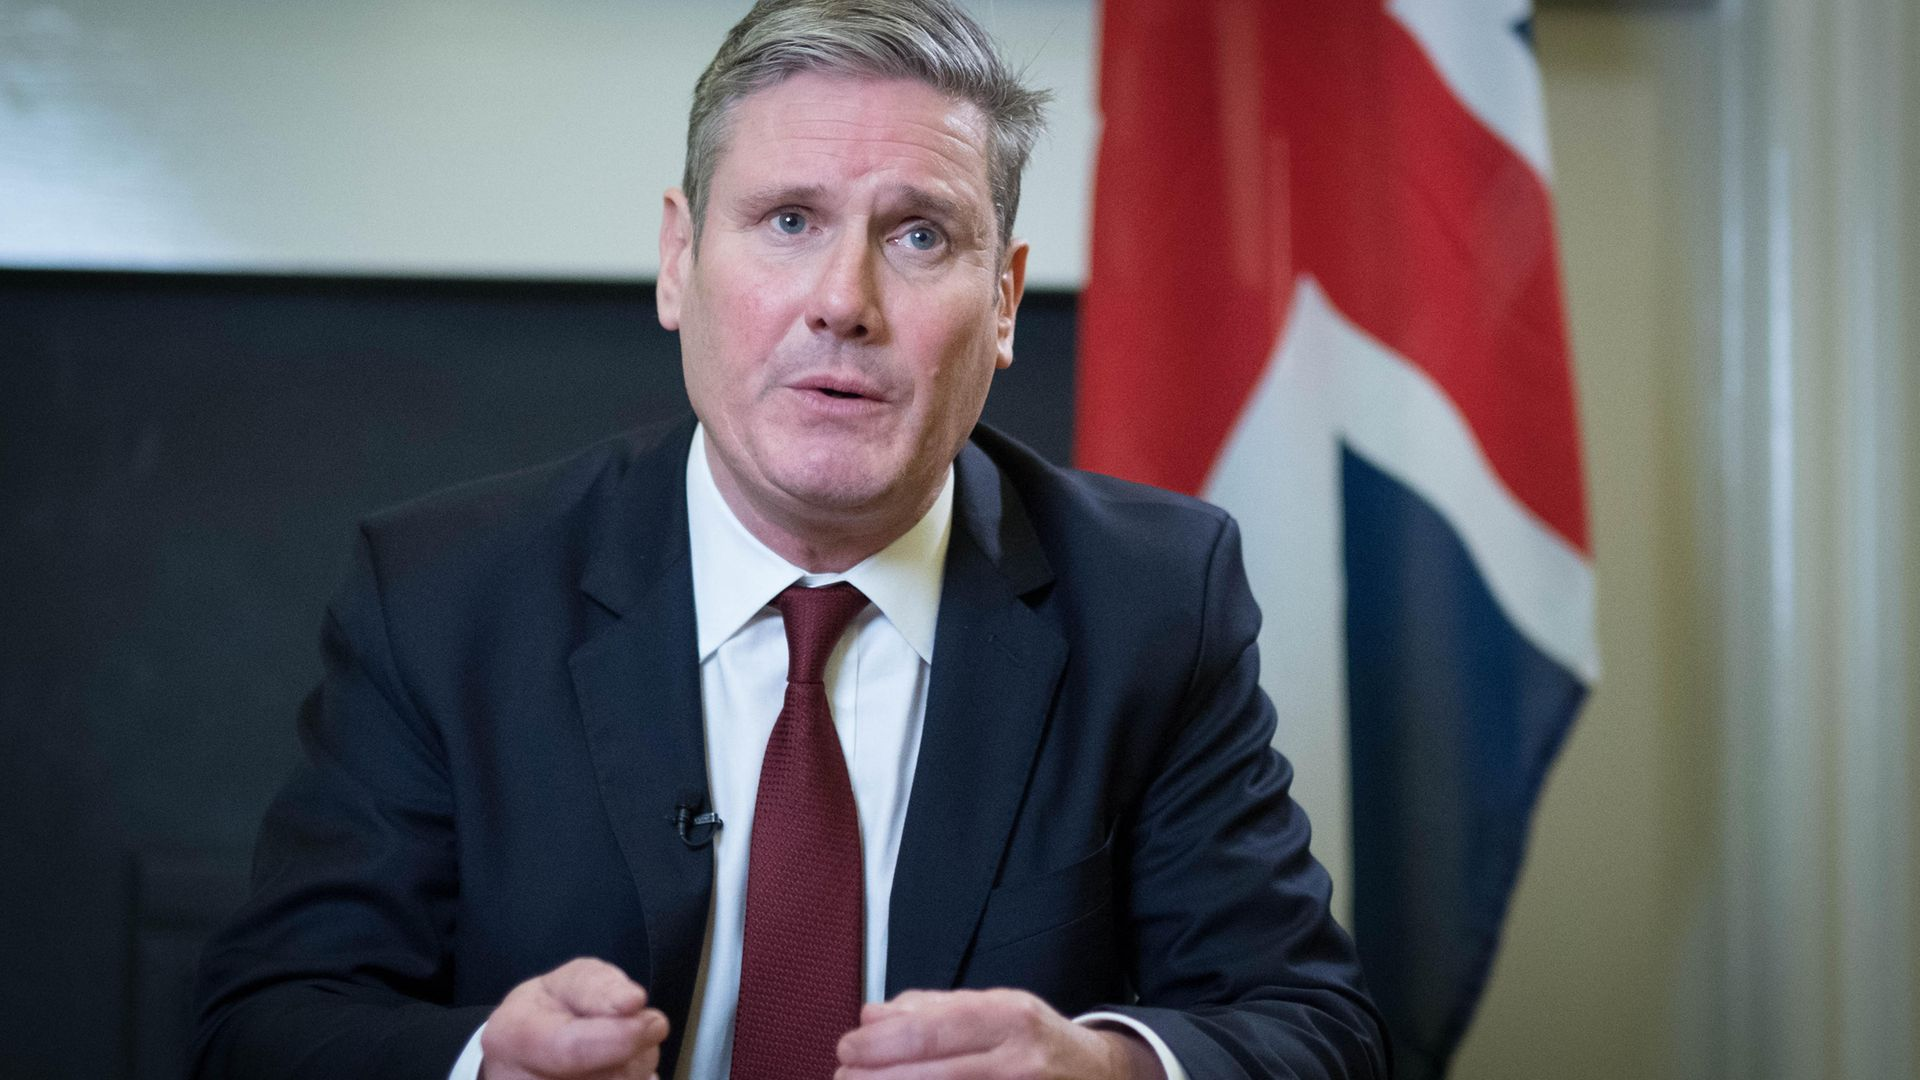 Labour leader Sir Keir Starmer delivering a statement from his office in the House of Commons in central London - Credit: PA